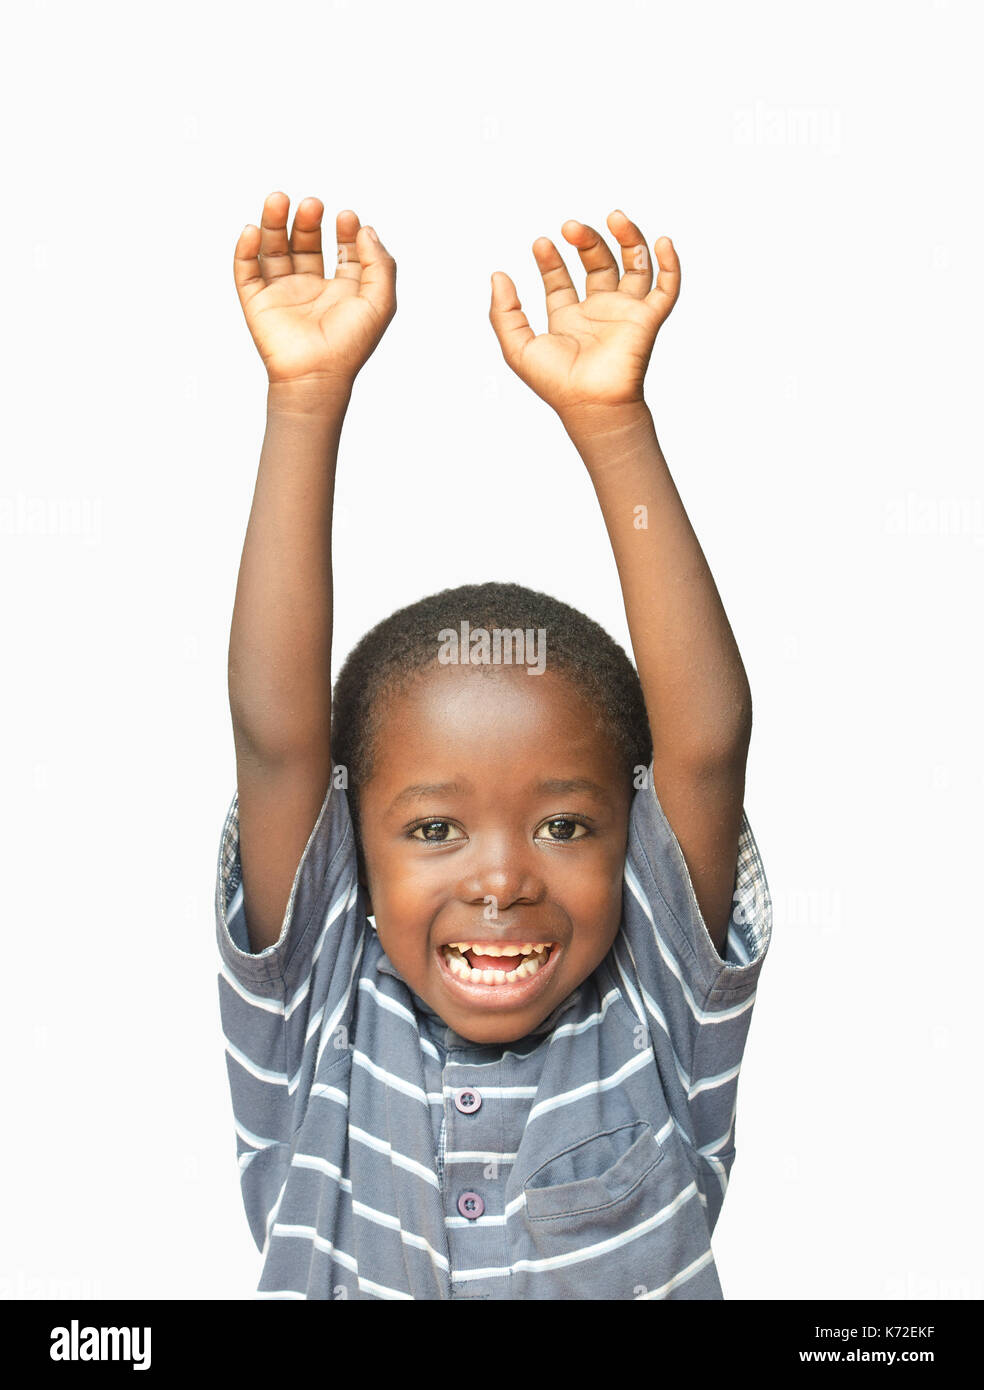 Little African boy holding his hands up in the air whilst laughing and smiling - Stock Image